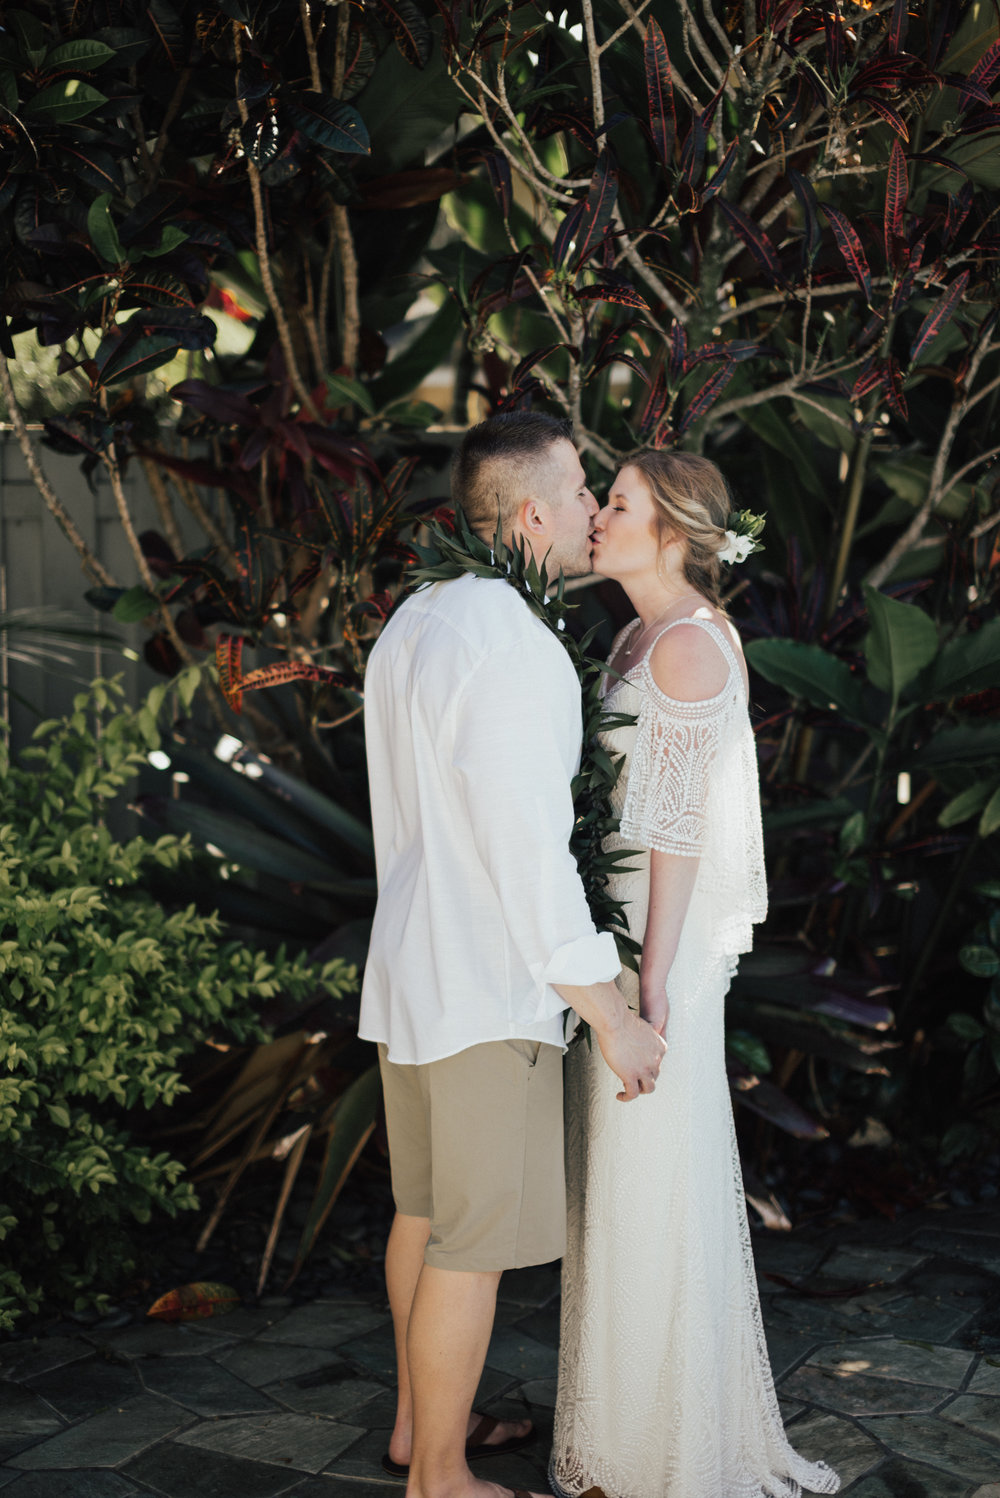 Kauai-elopement-photographer-14.jpg